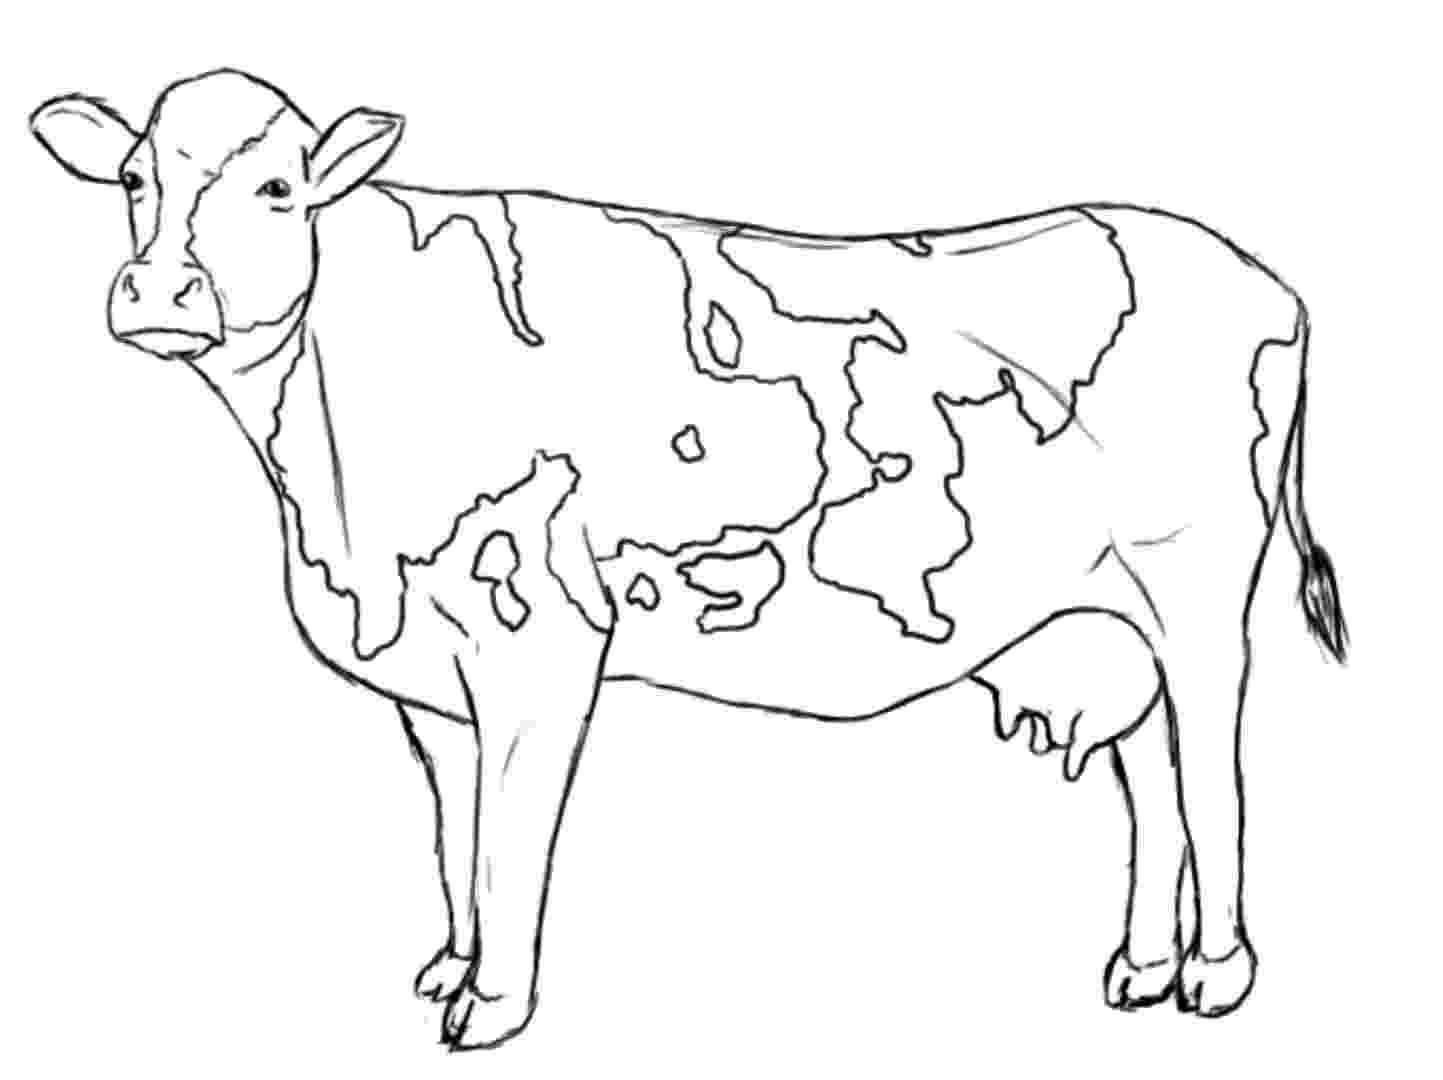 cow coloring pages cute cow animal coloring books for kids drawing pages coloring cow